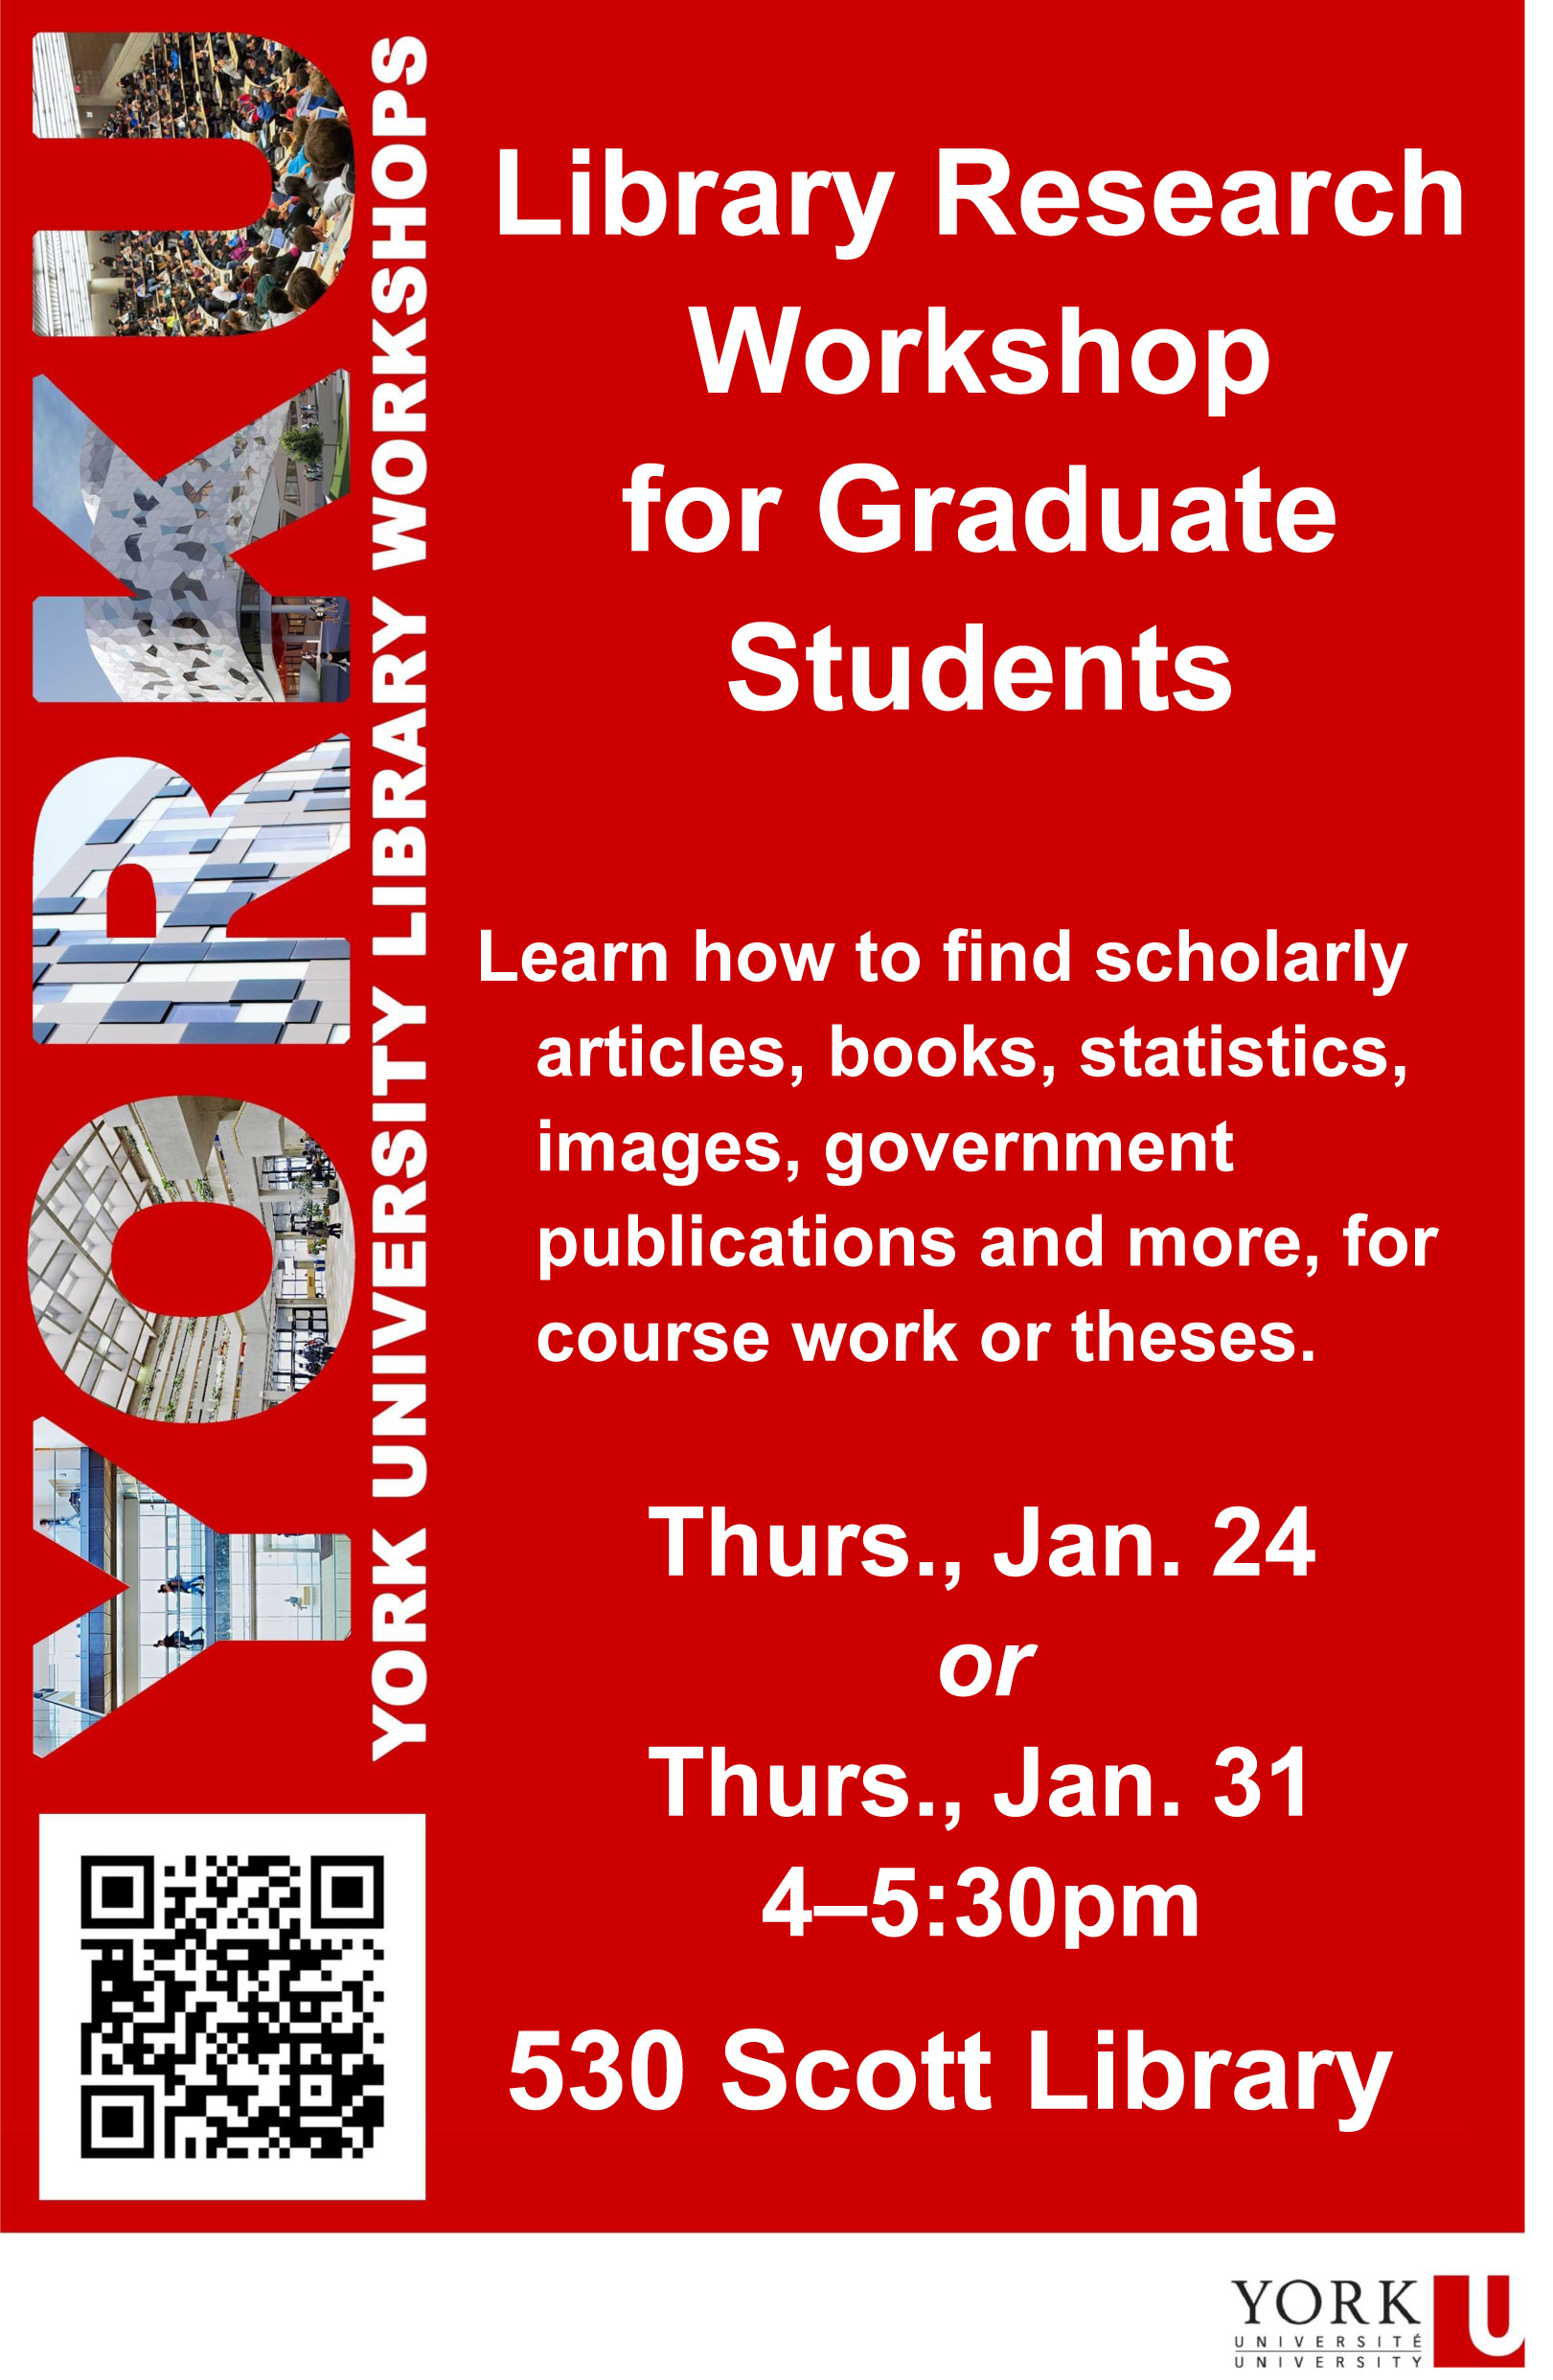 Library Research Workshop for Graduate Students | York